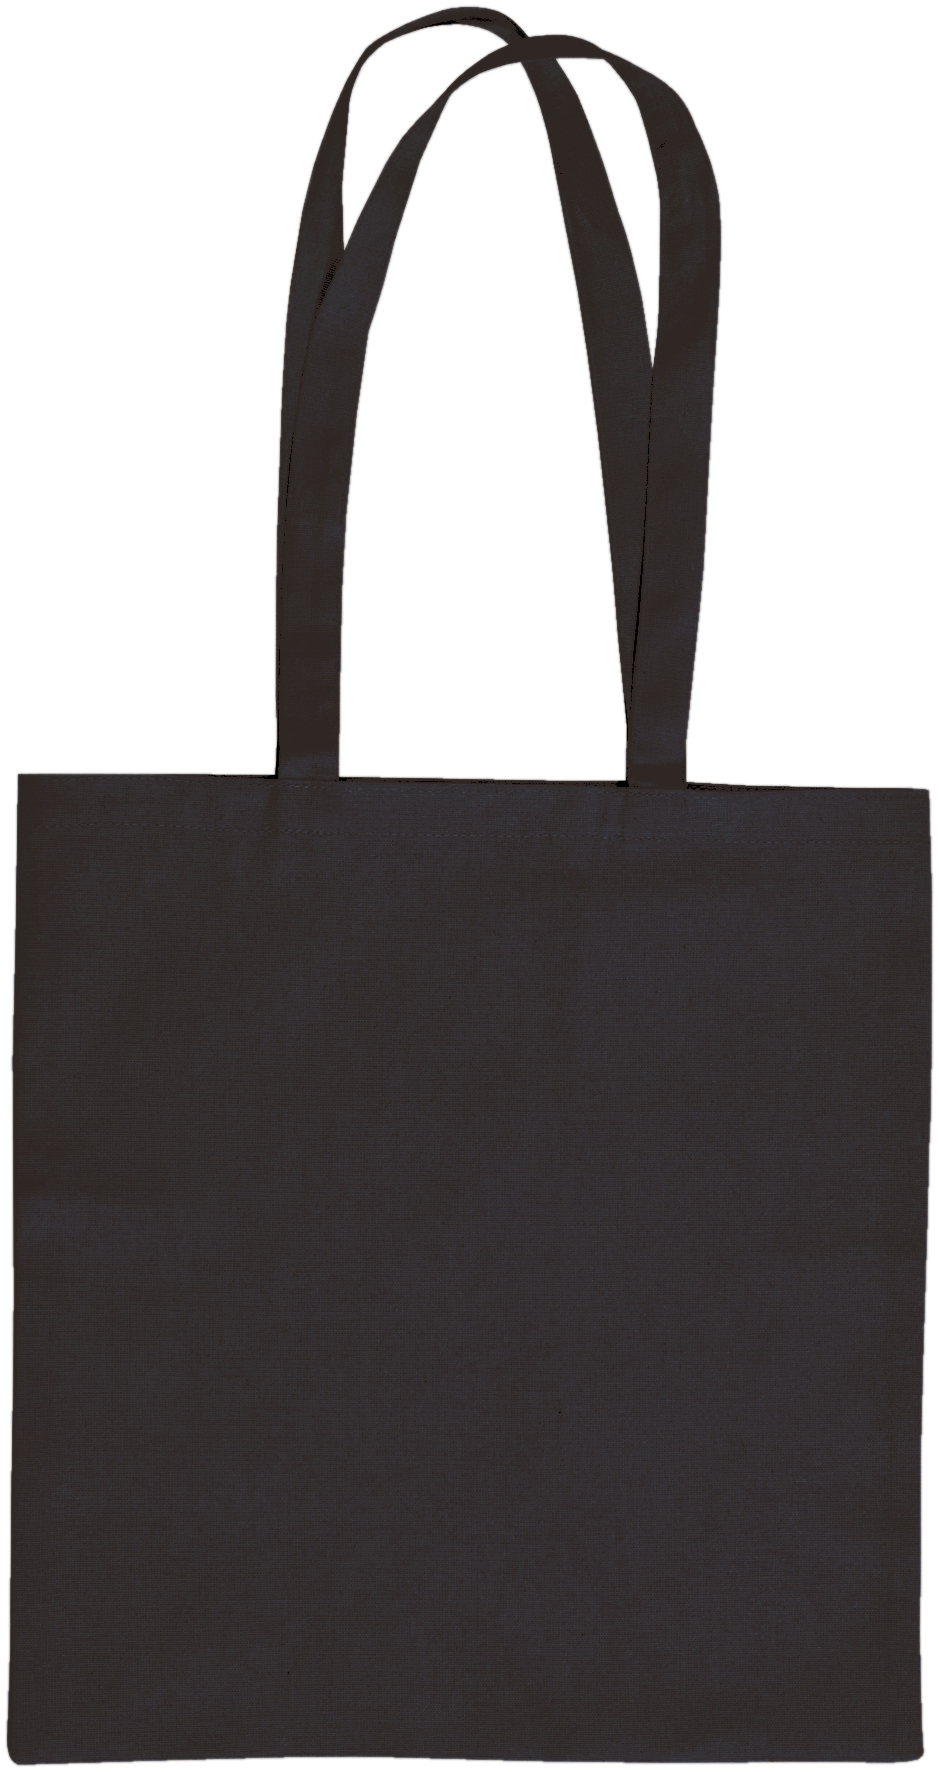 Promotional Sandgate 7oz Cotton Canvas Tote Bag